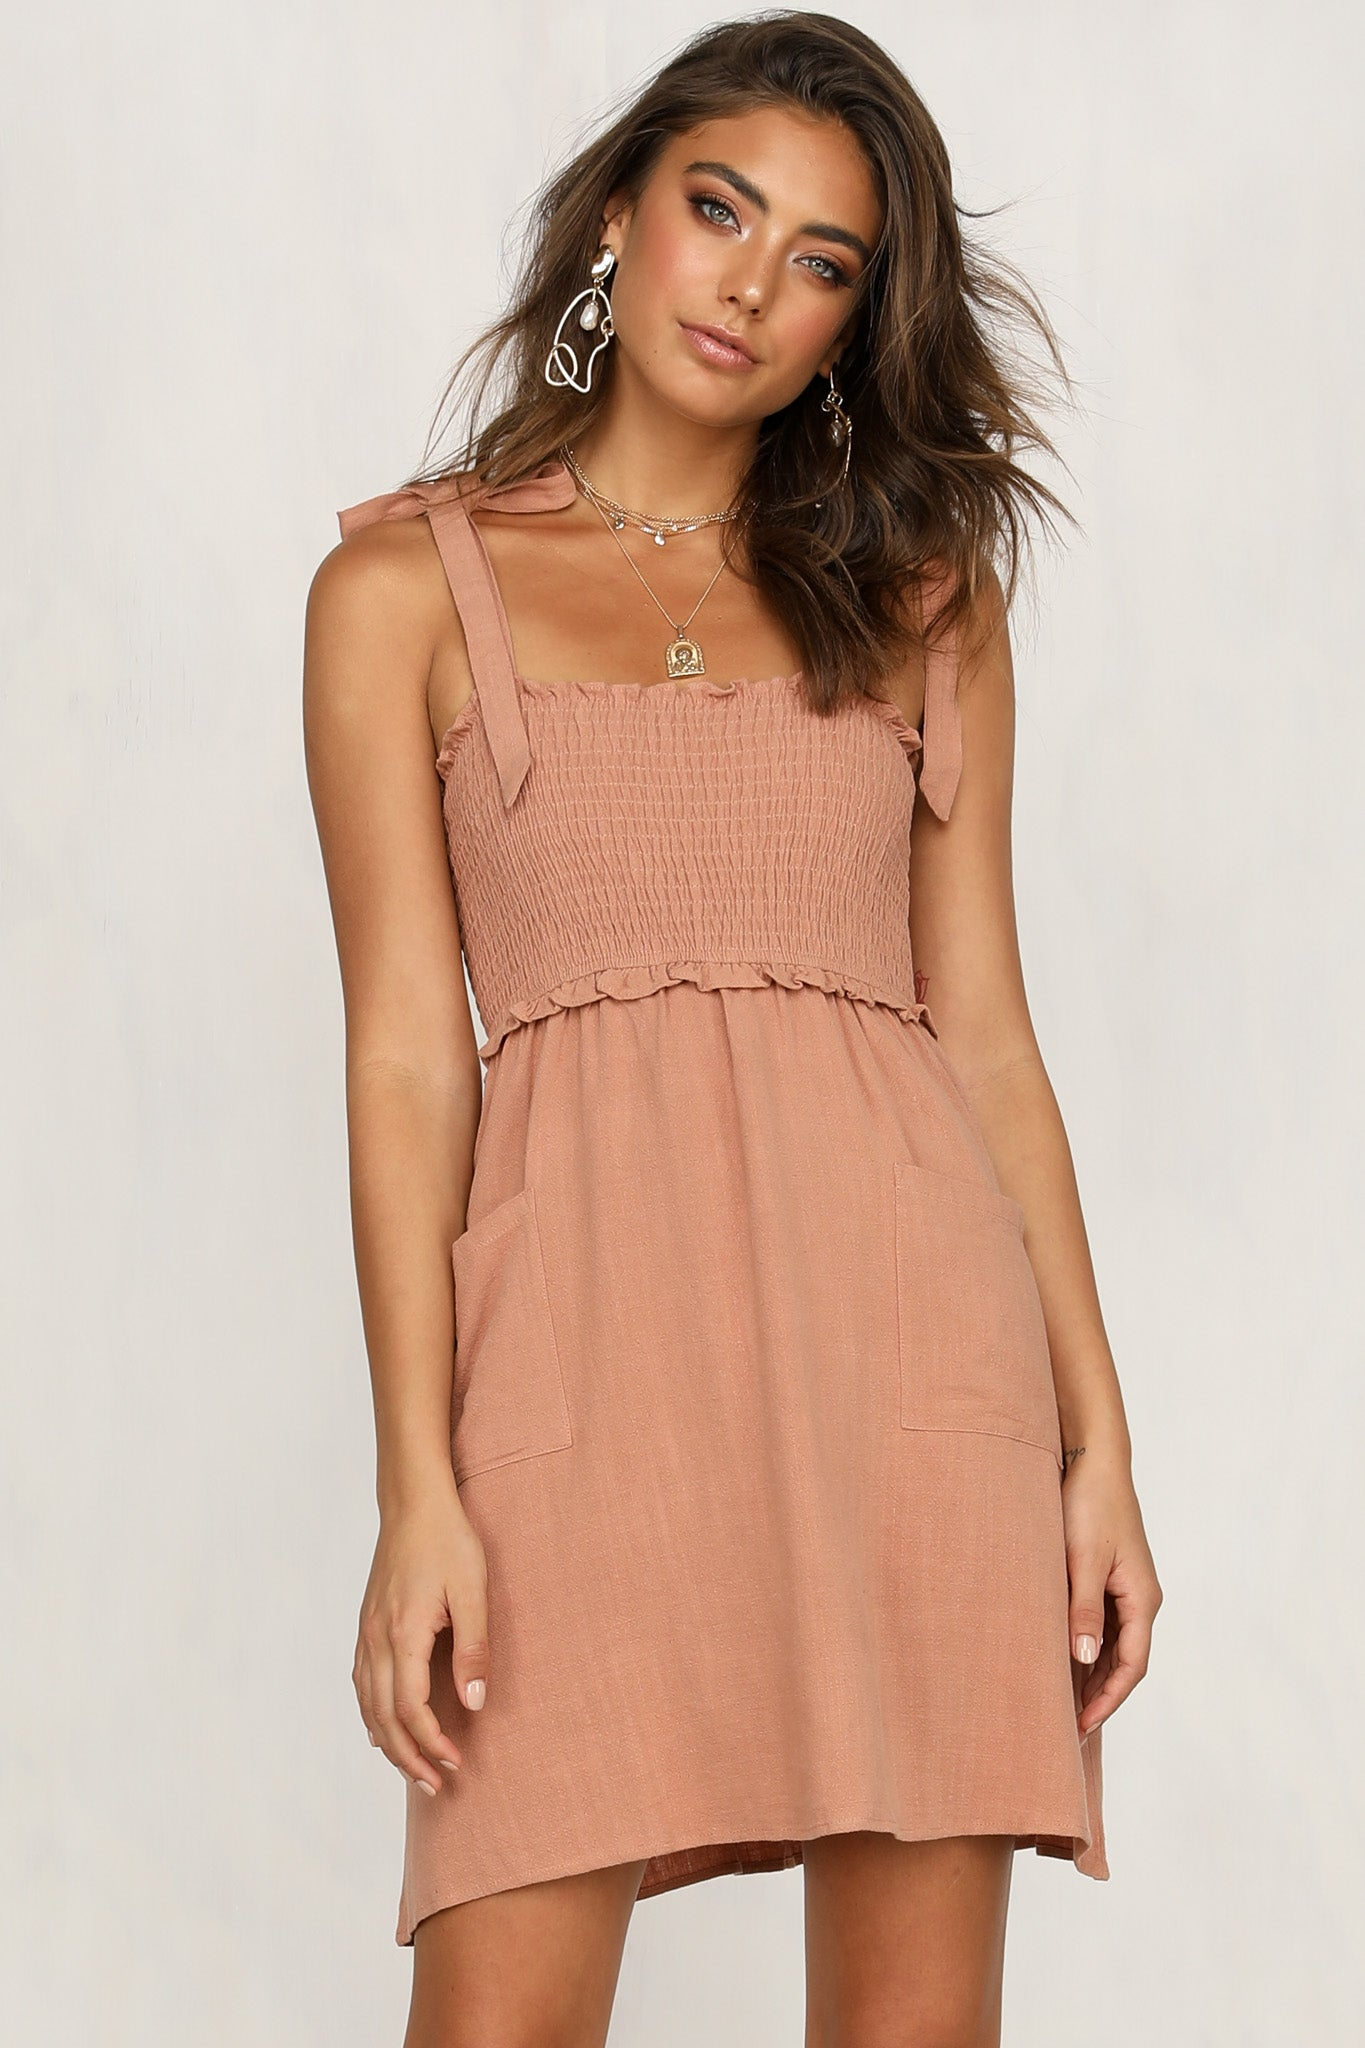 Watch And Learn Dress (Tan)